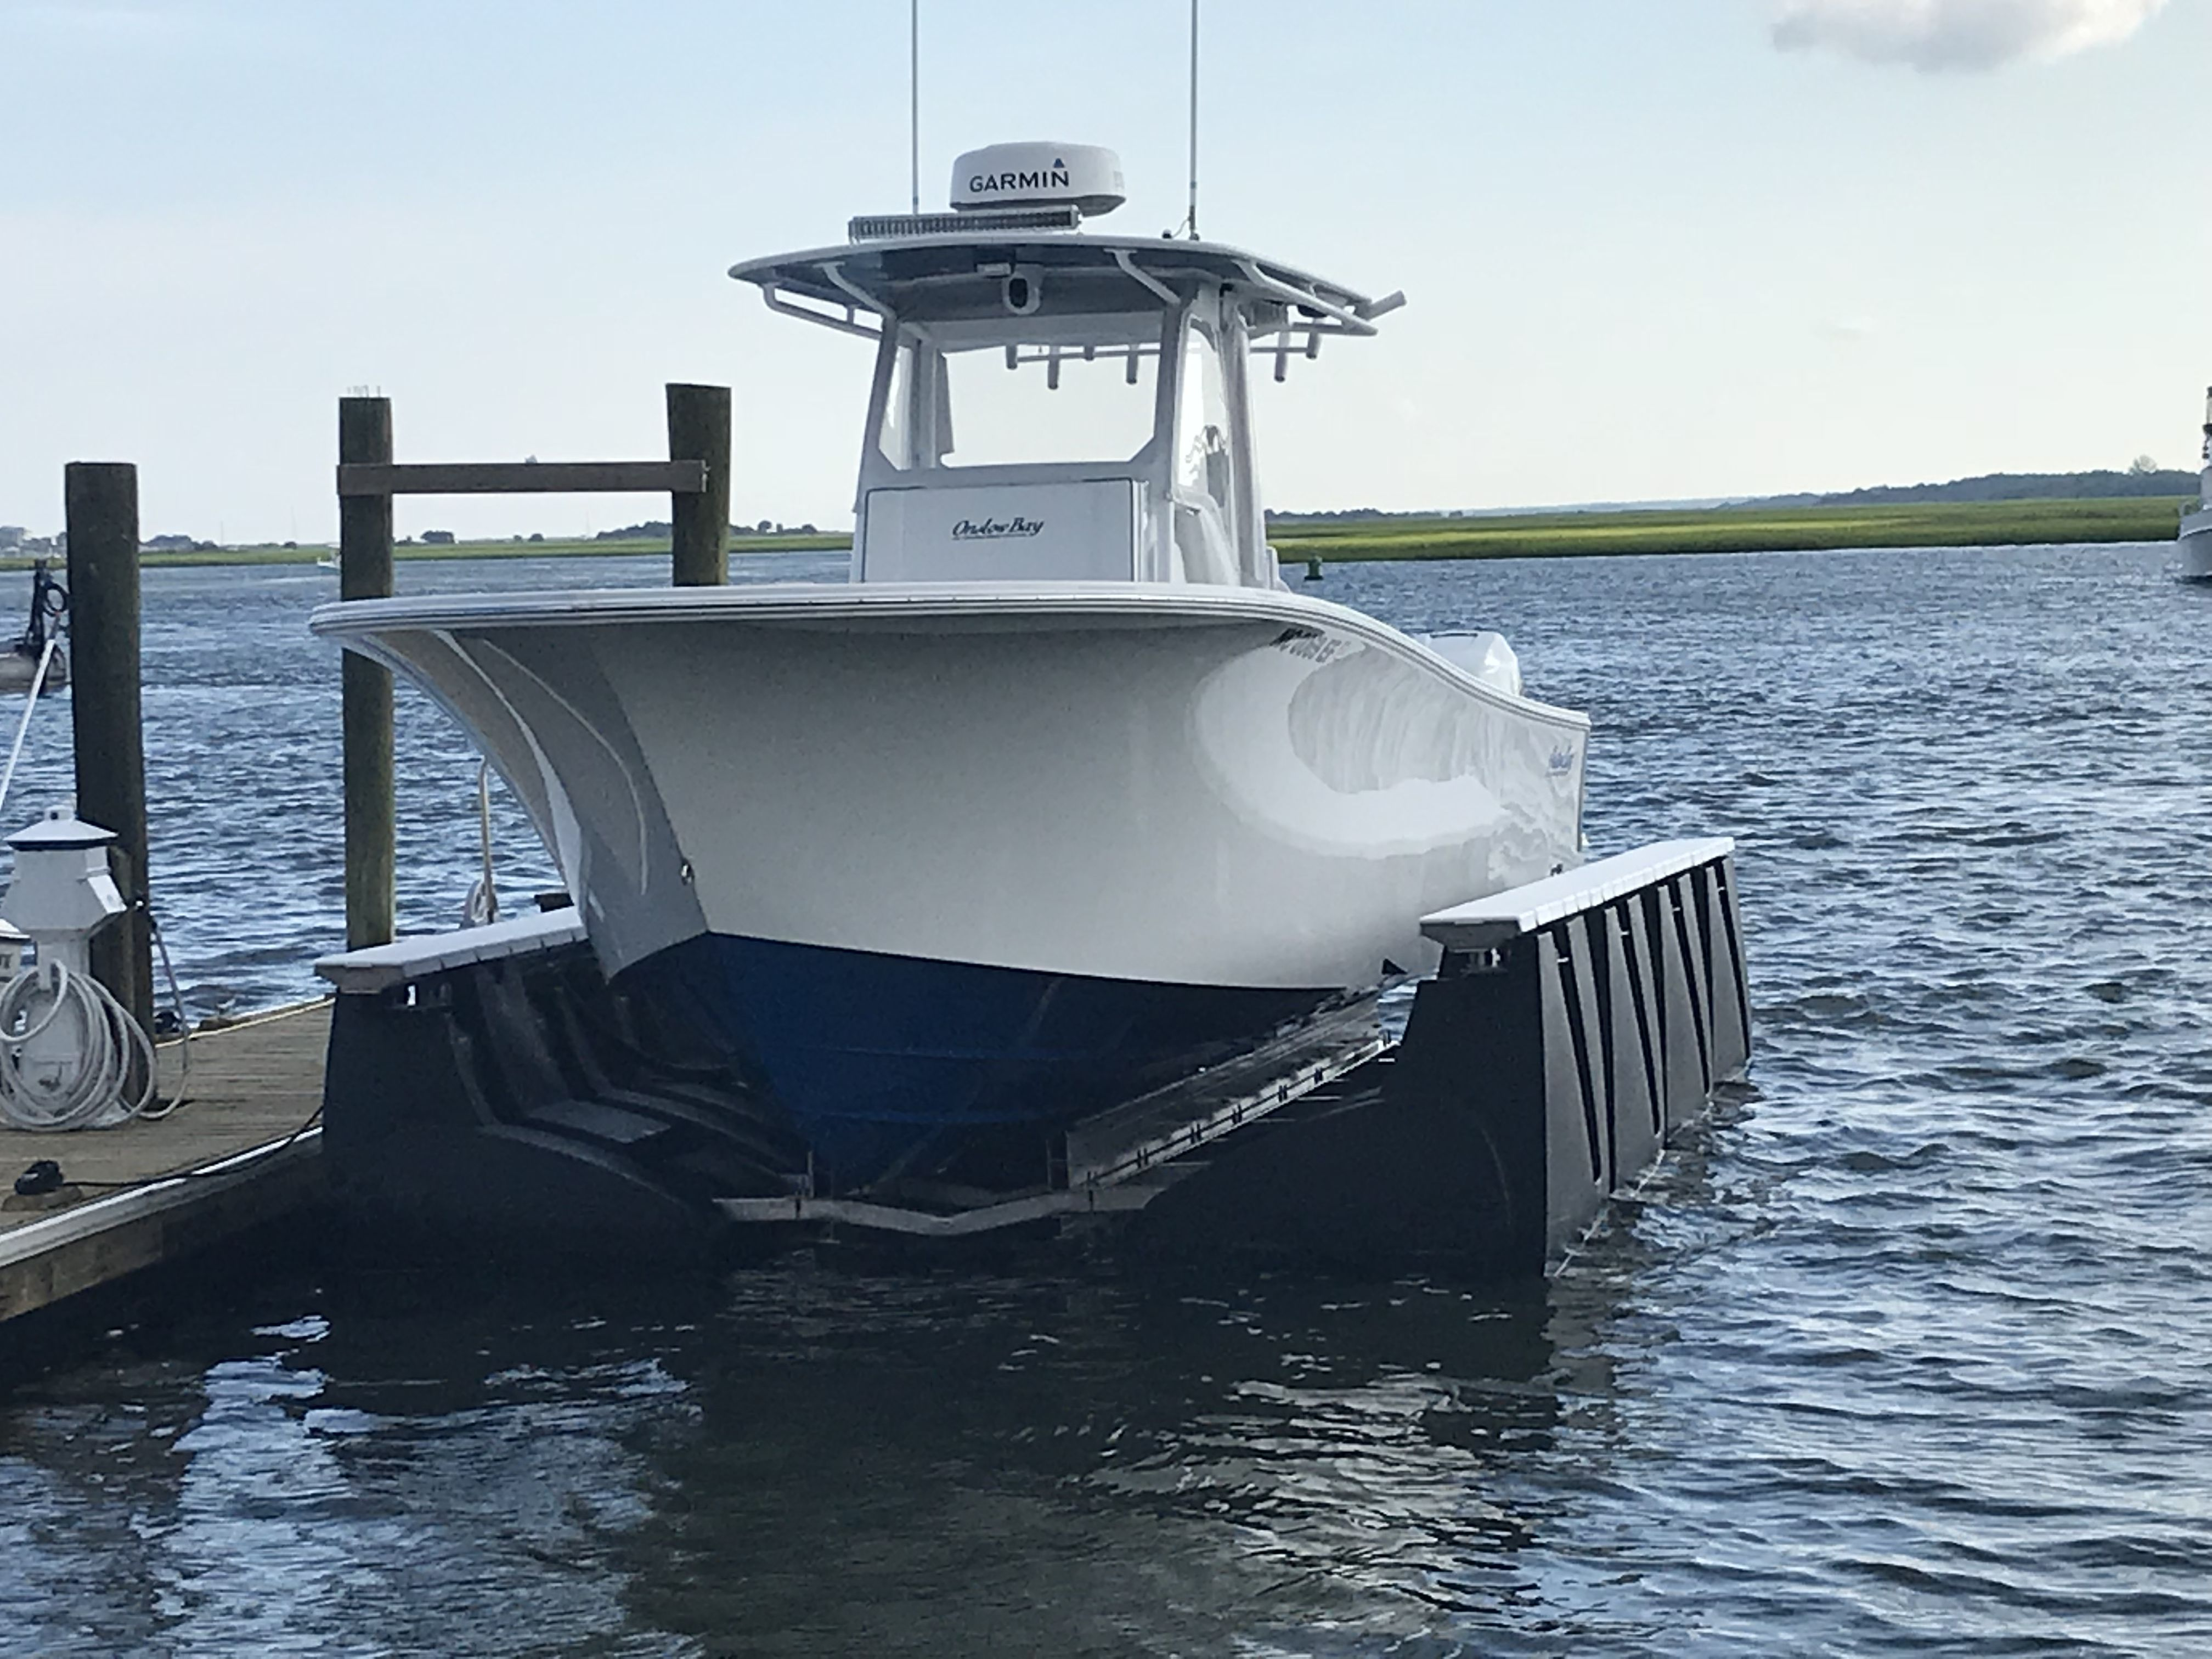 15,000# Capacity Floating Boat Lift with a 33' Onslow Bay CC Boat in  Wrightsville Beach NC #floatingboatdock, #boatdock, #floating… | Floating  boat, Boat lift, Boat